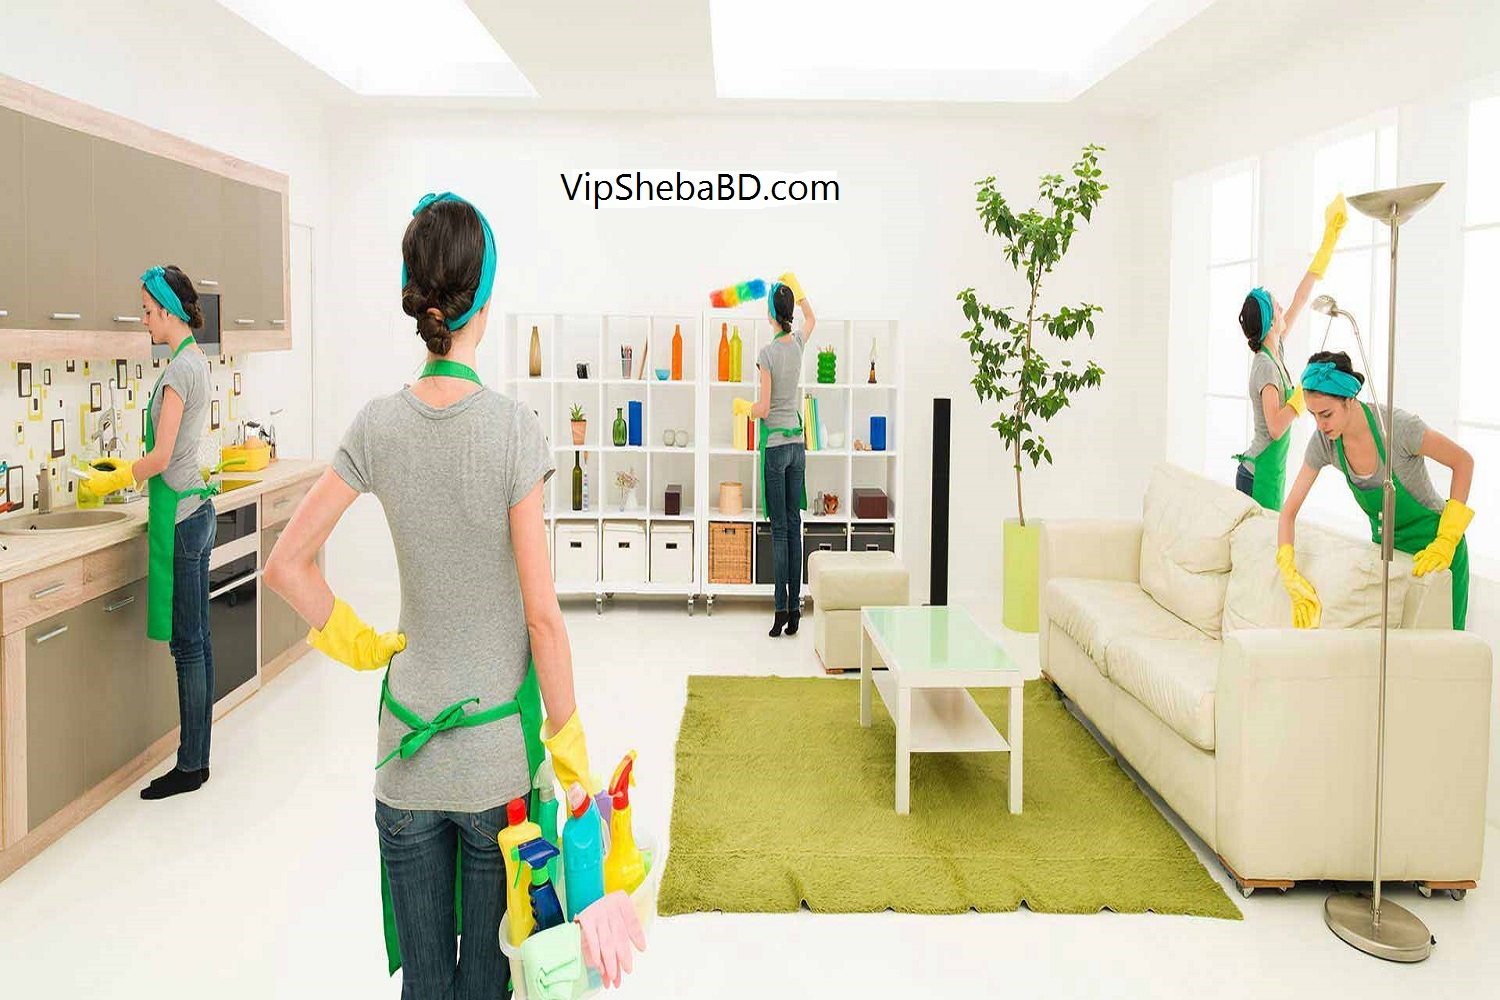 Home cleaning service inBangladesh